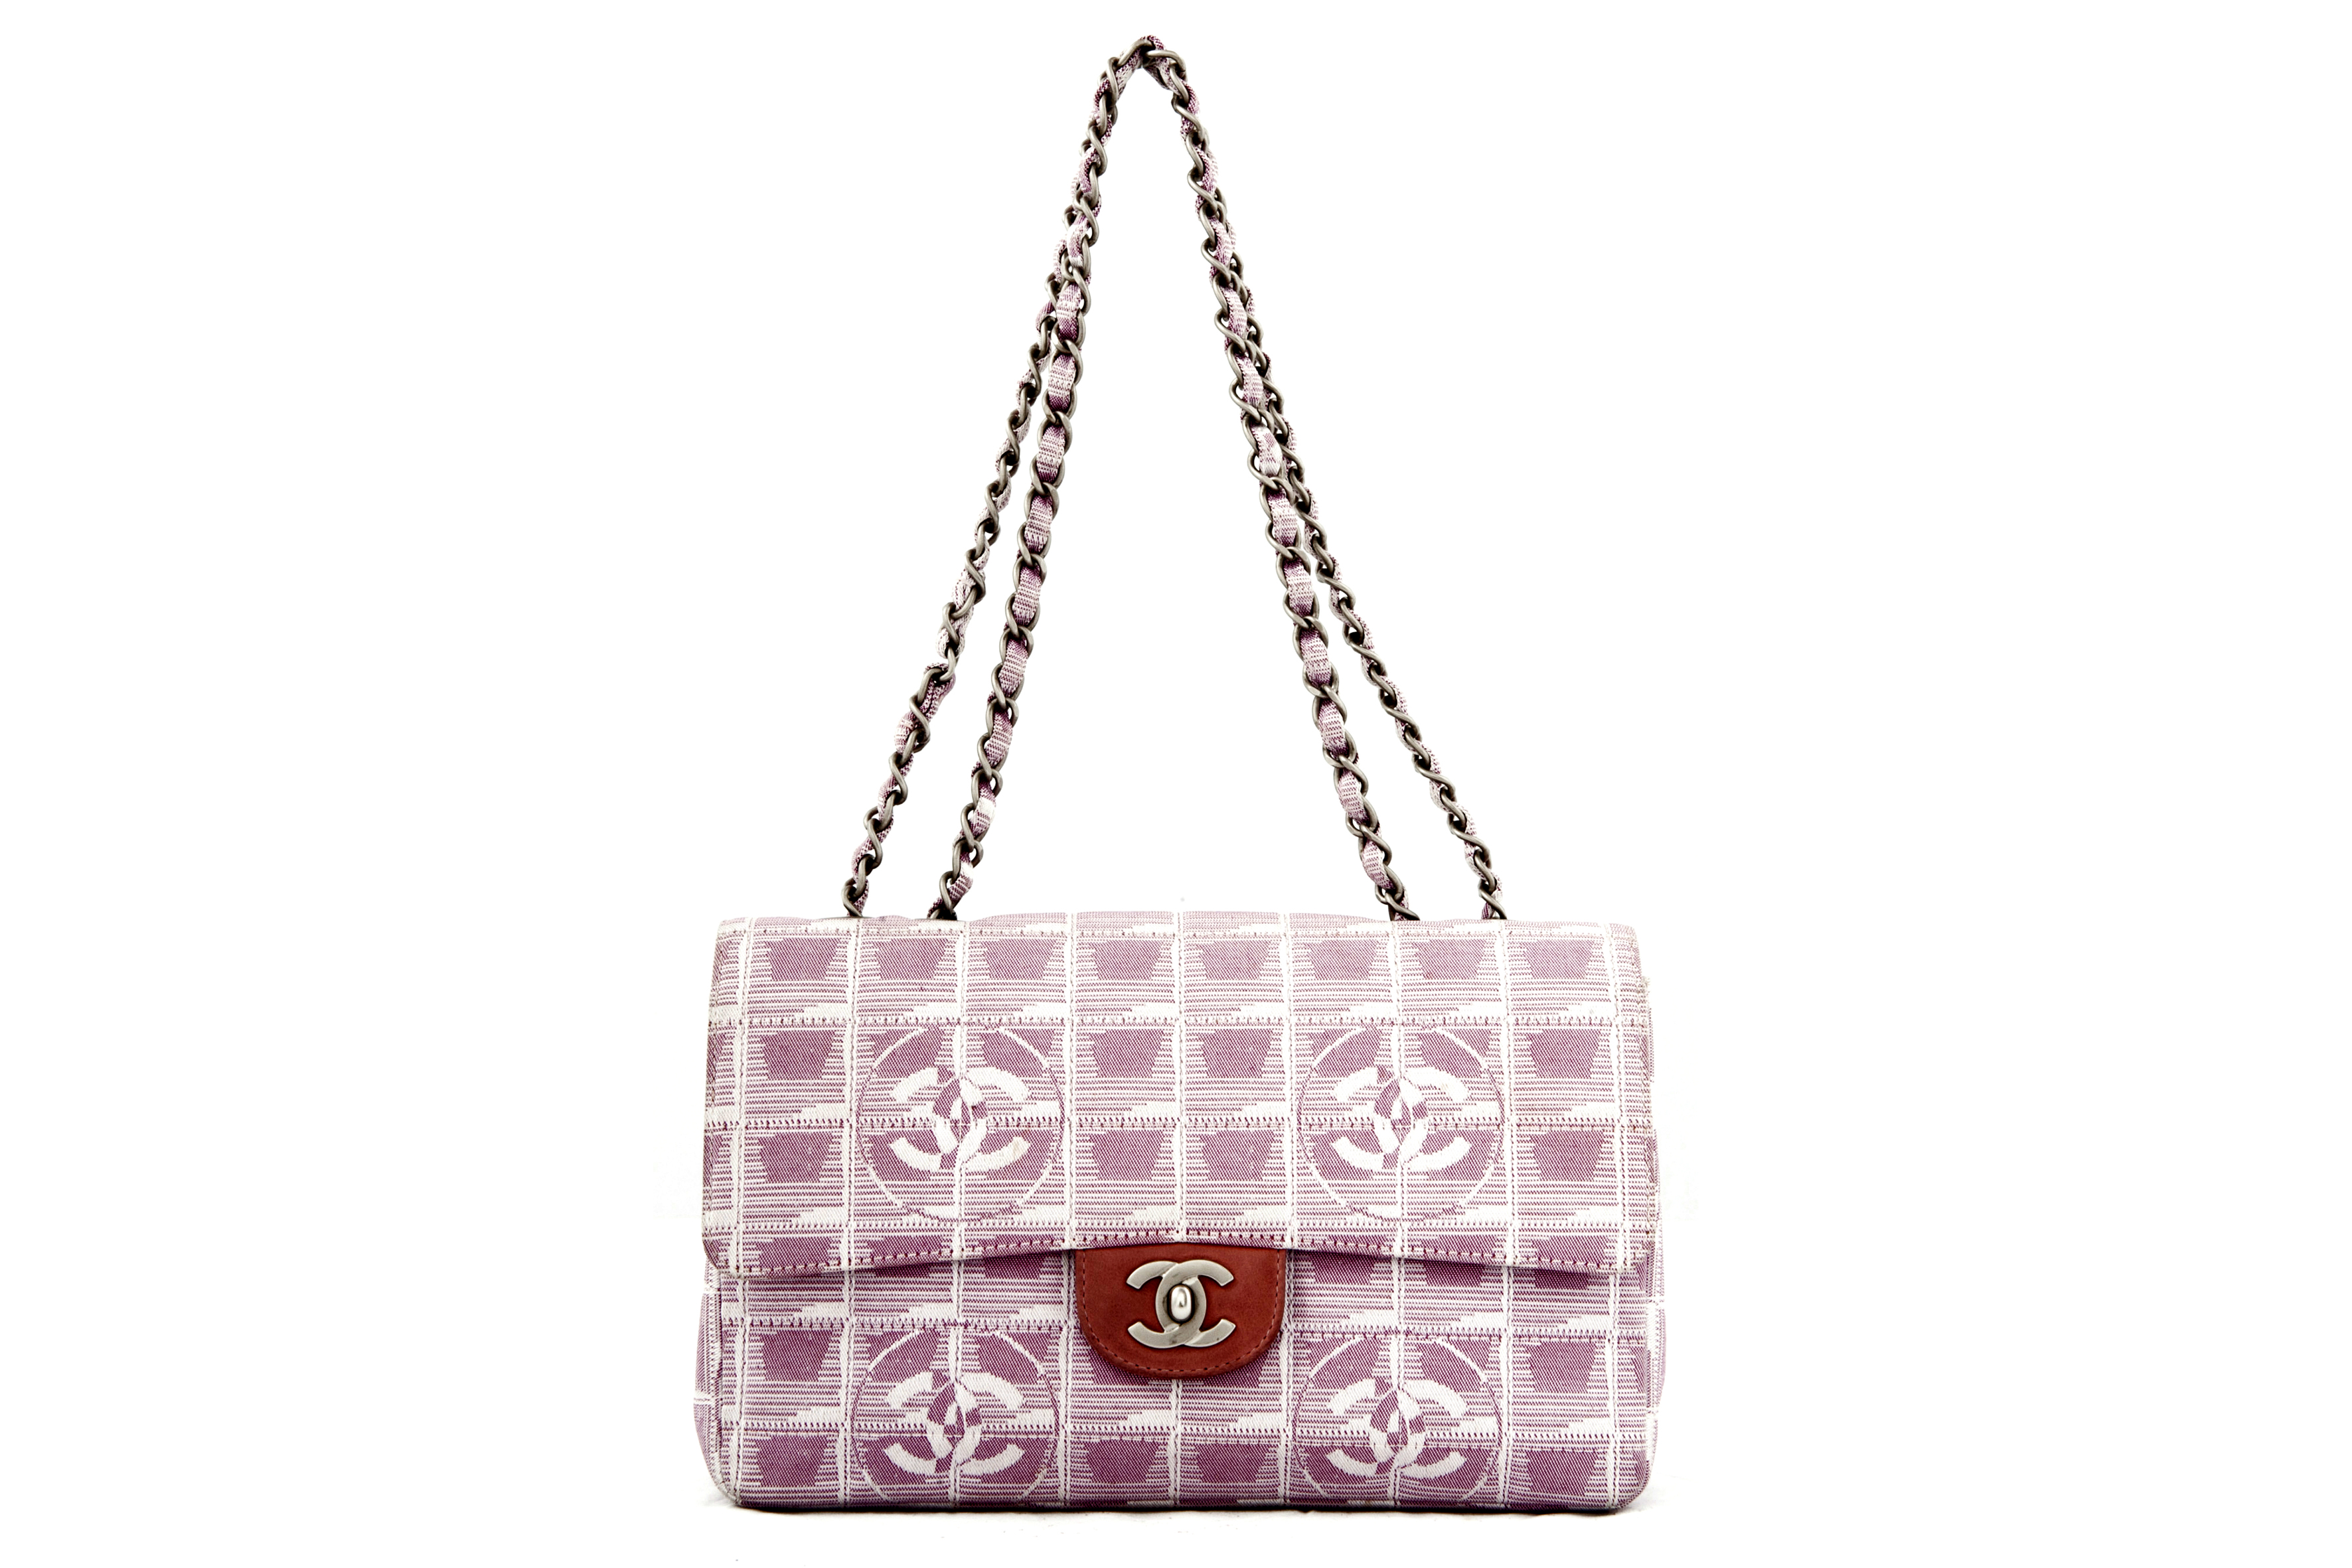 82f19aefa69a Chanel ''Timeless'' pink and white fabric - Vintage Shop in Mykonos